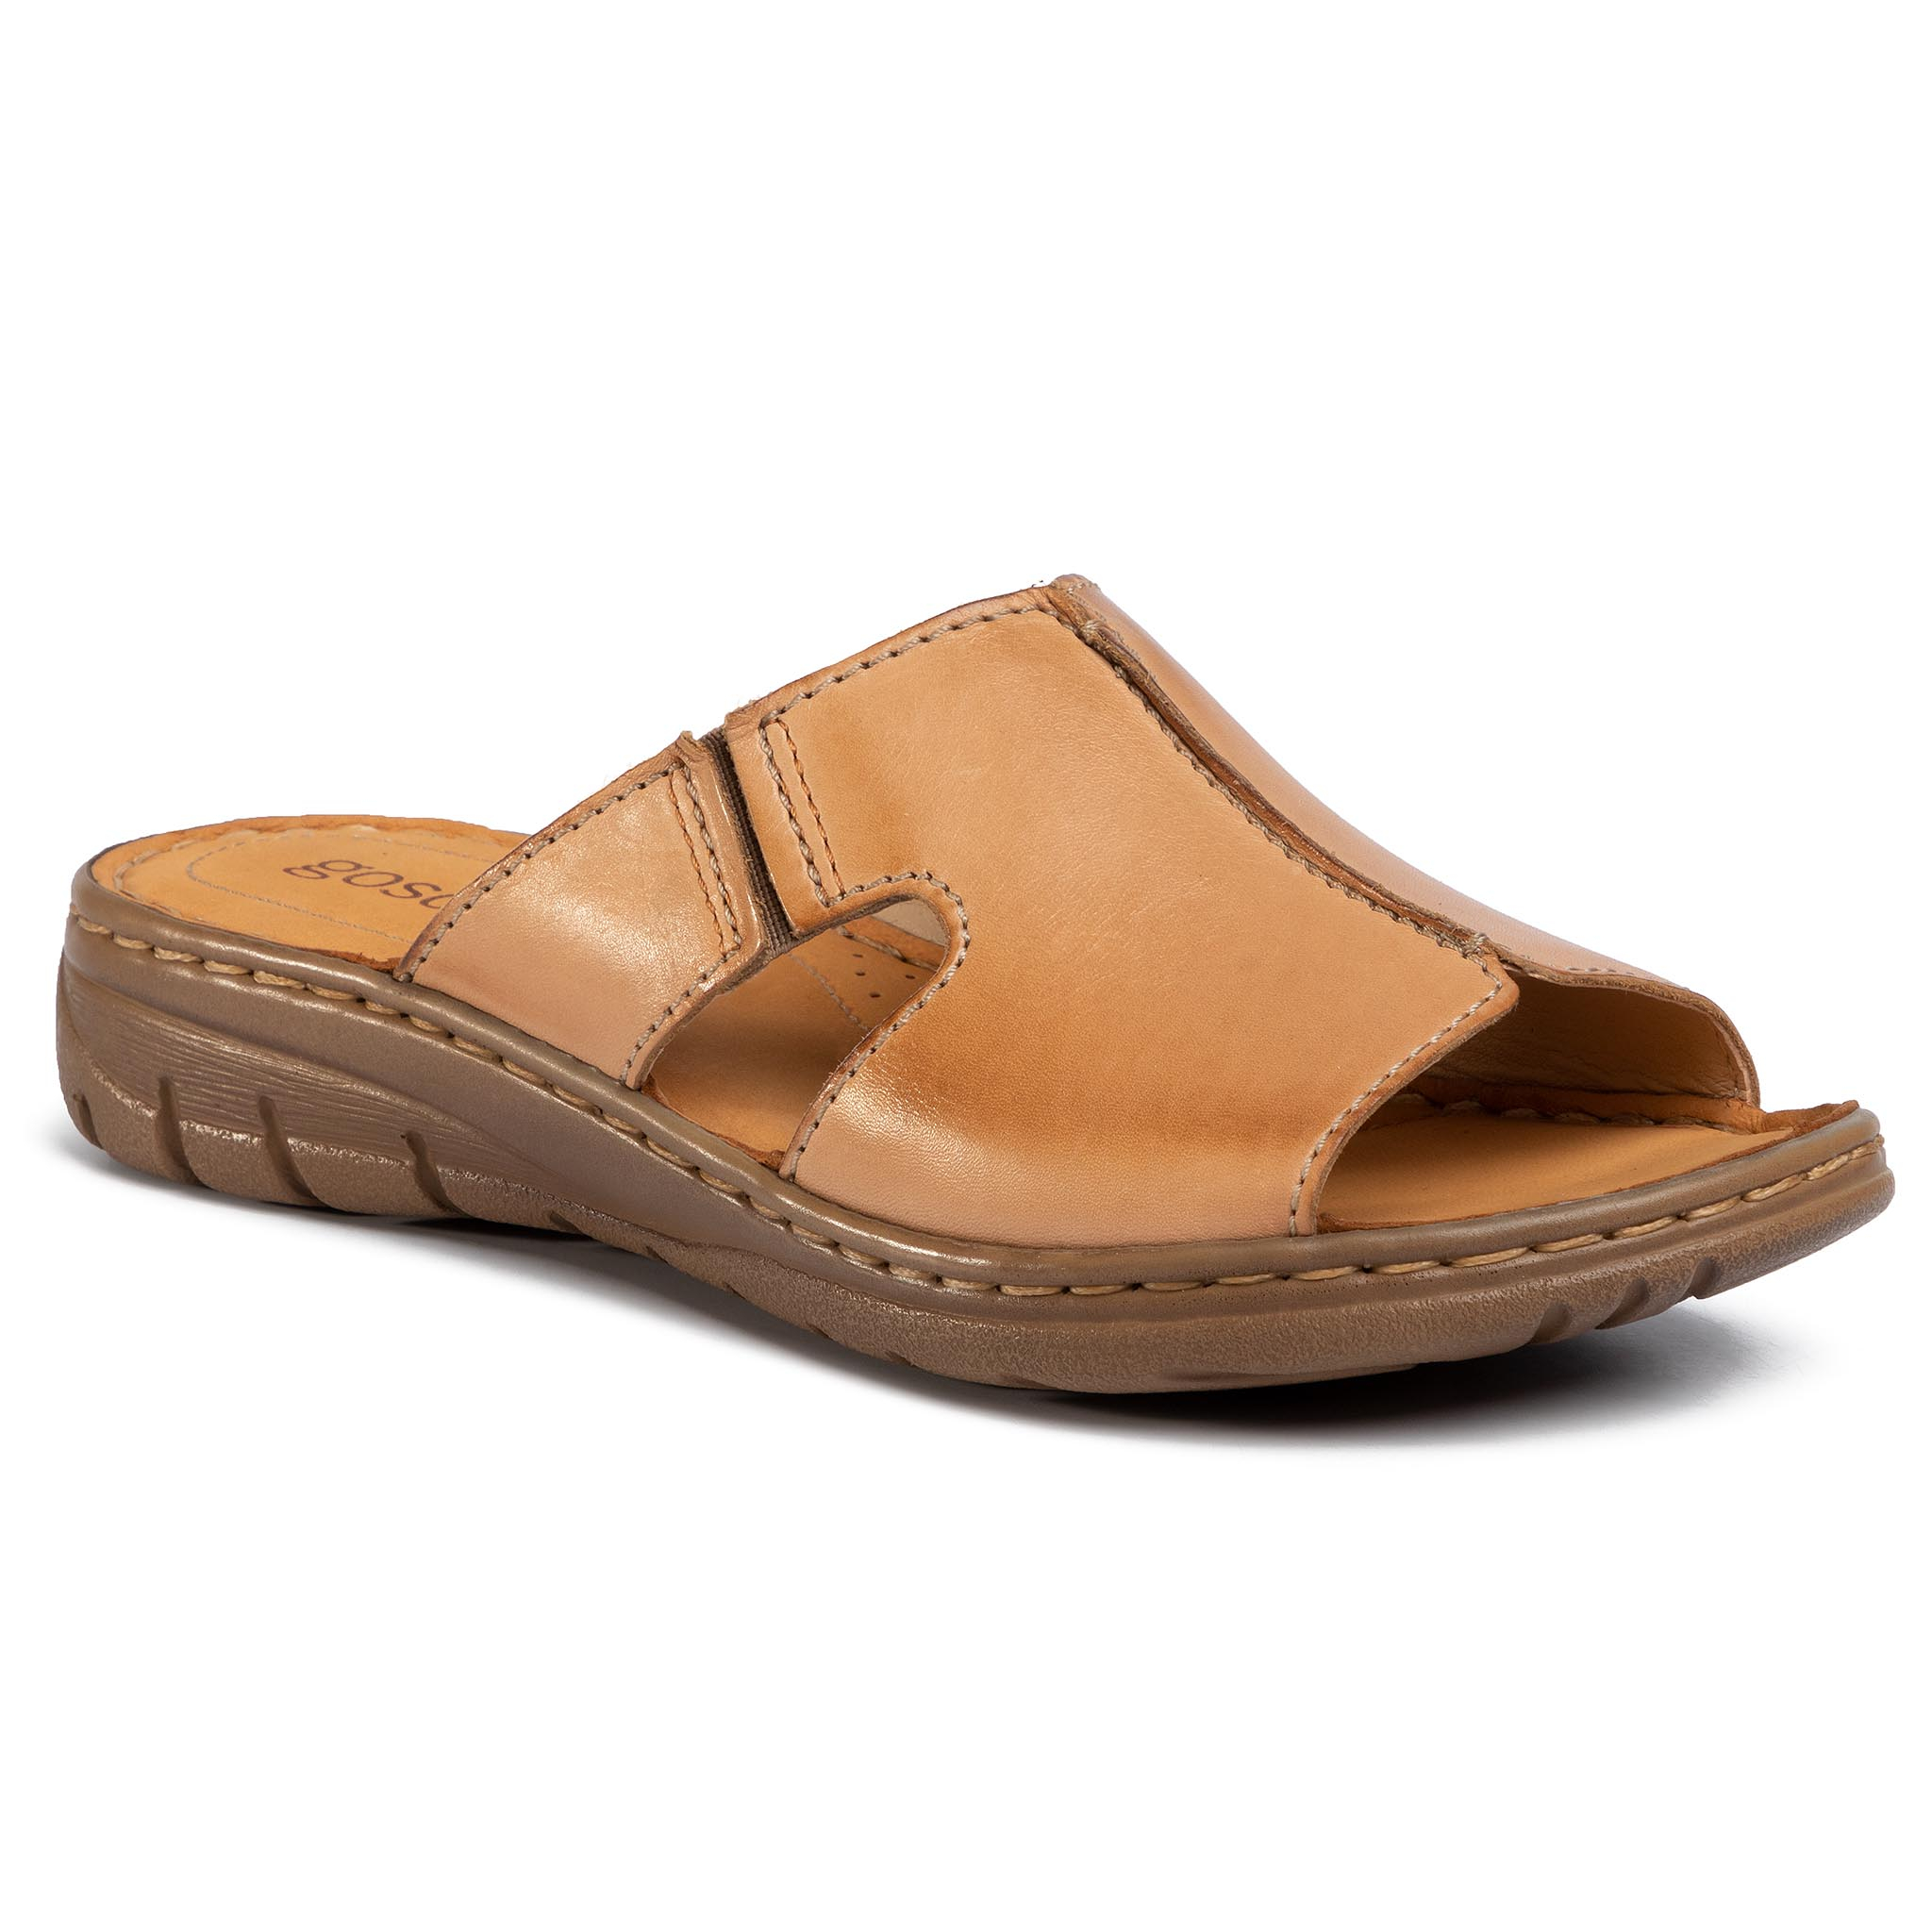 Șlapi Go Soft - Wi20-2041-03 Camel imagine epantofi.ro 2021